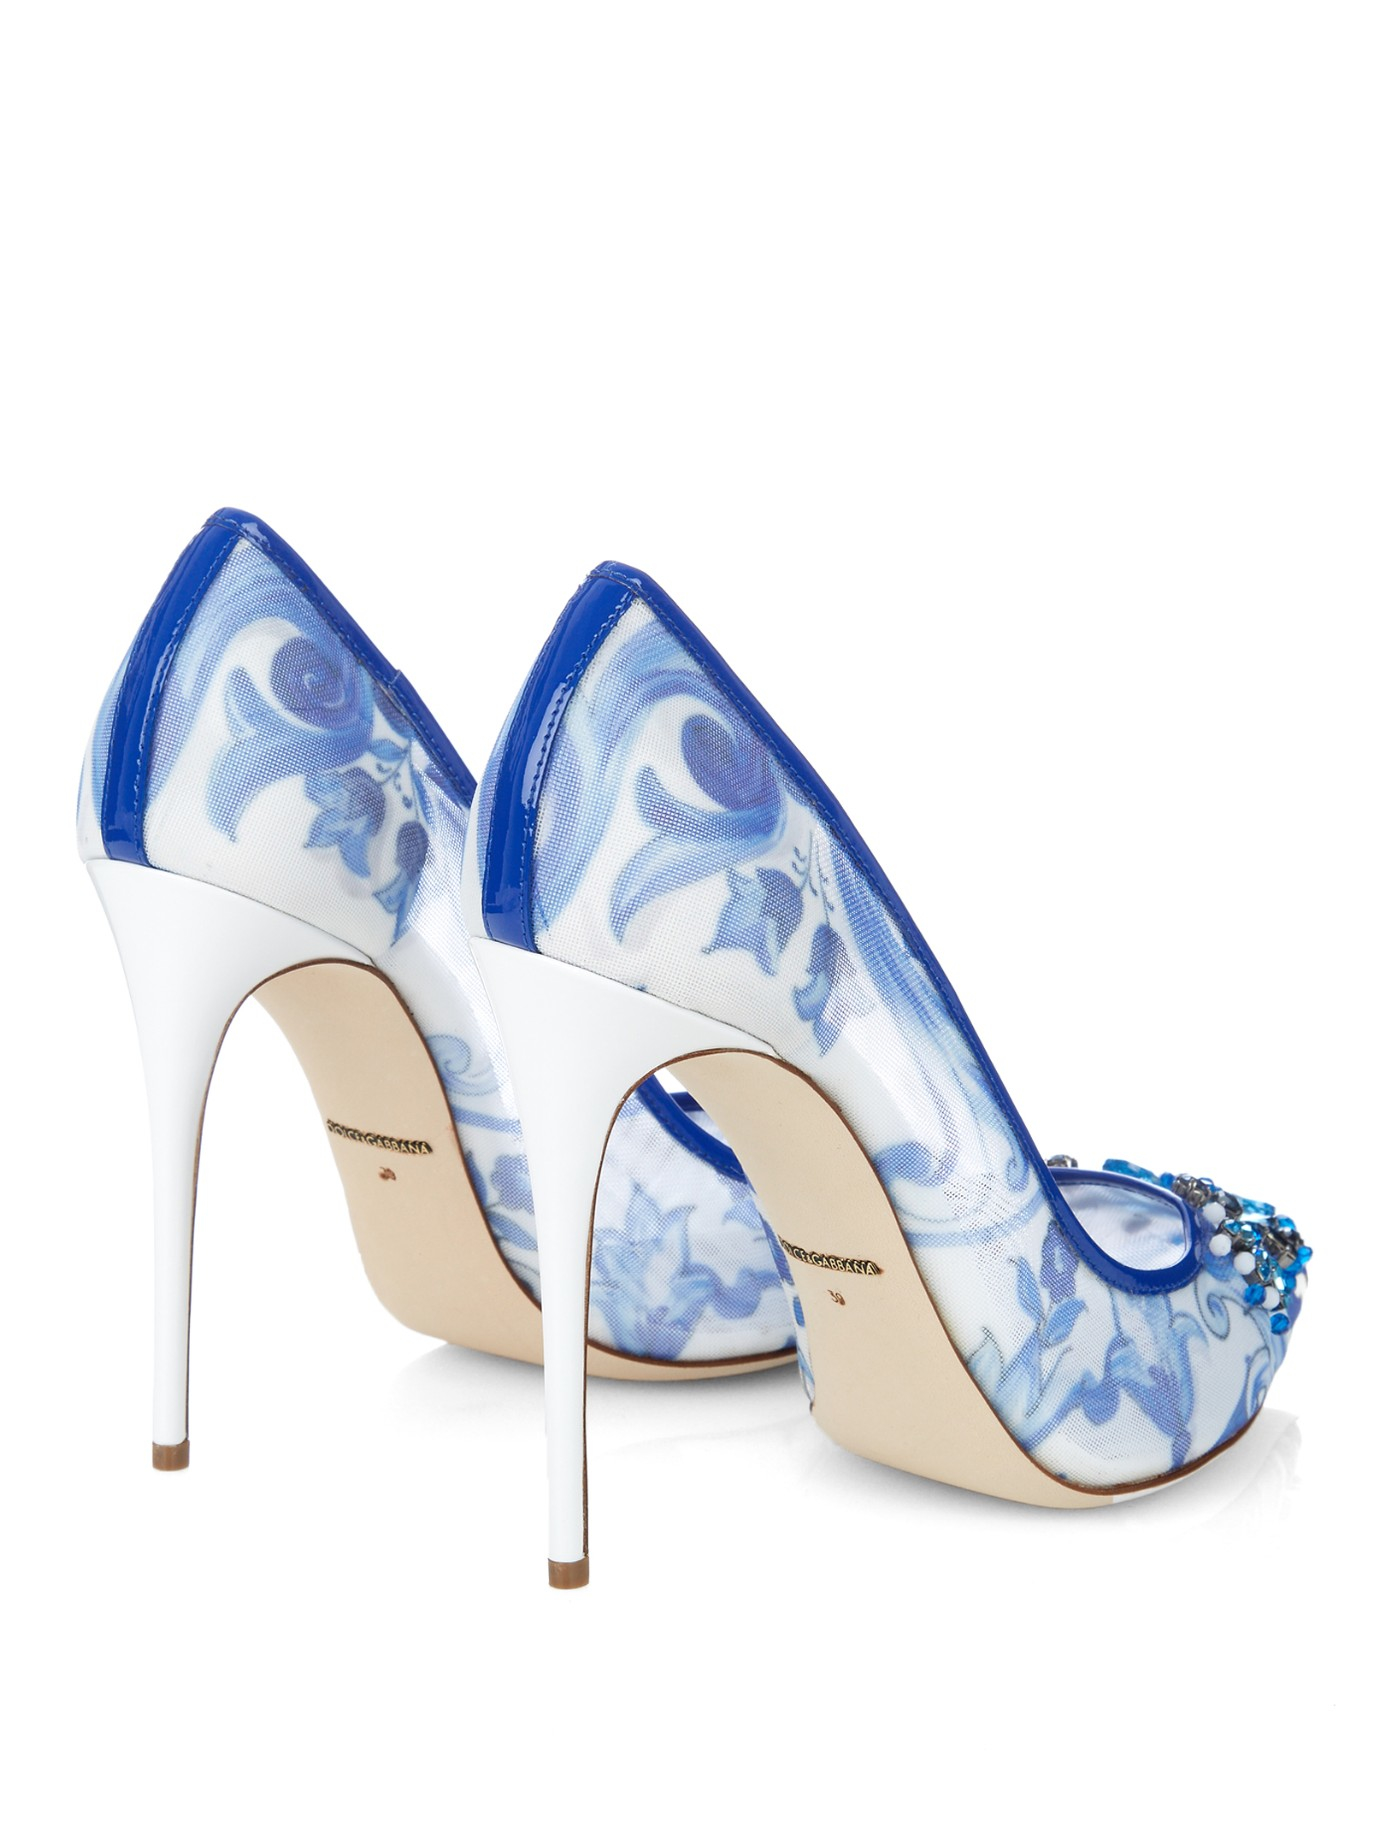 Blue And White Heels kCgZw2OD